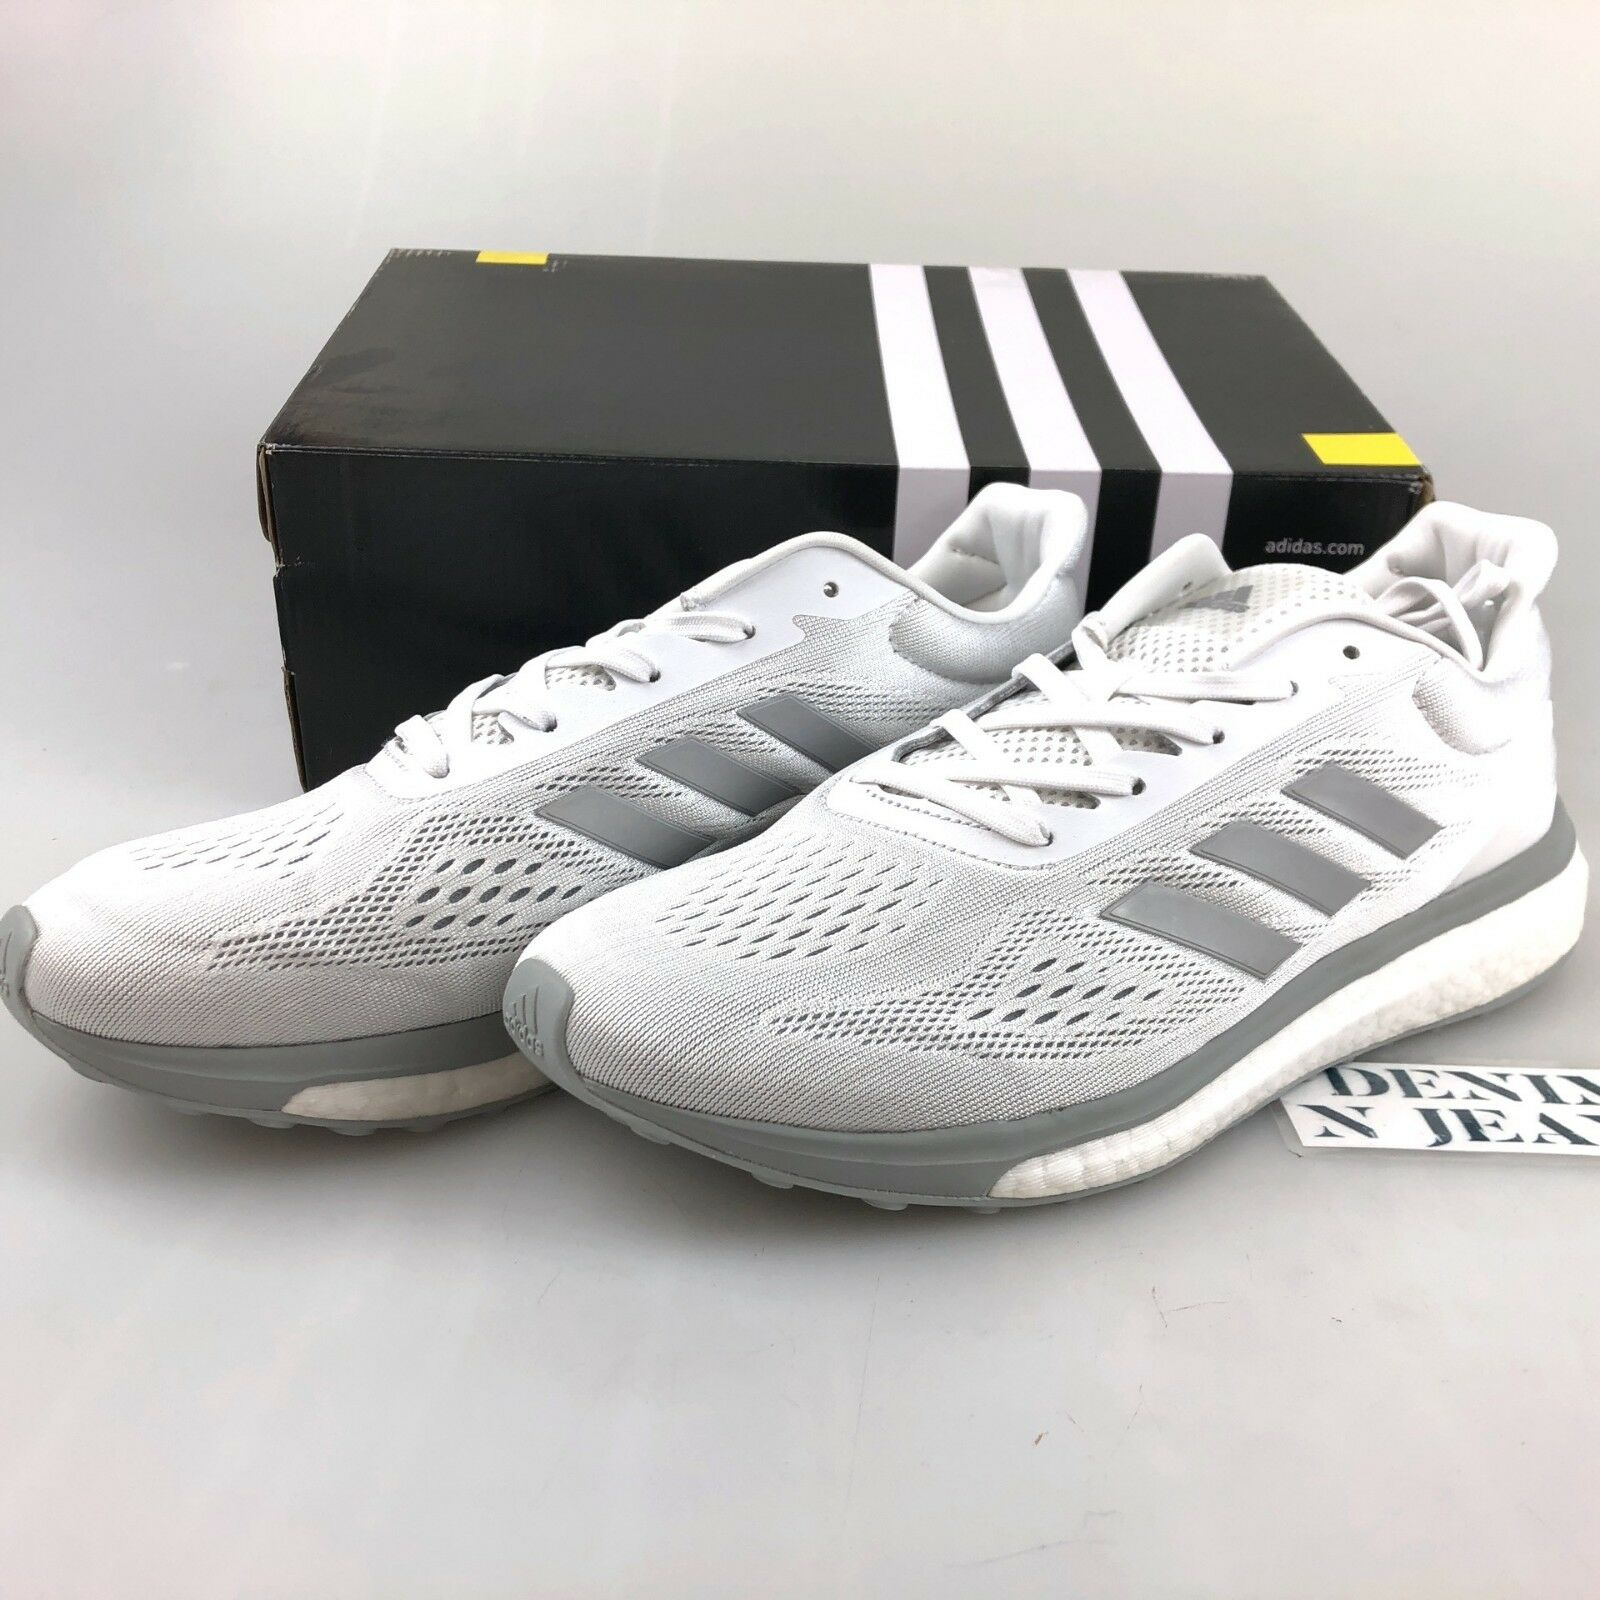 adidas White silver Boost Response Limited Running Shoe Womens 9.5 ... c43d1213e